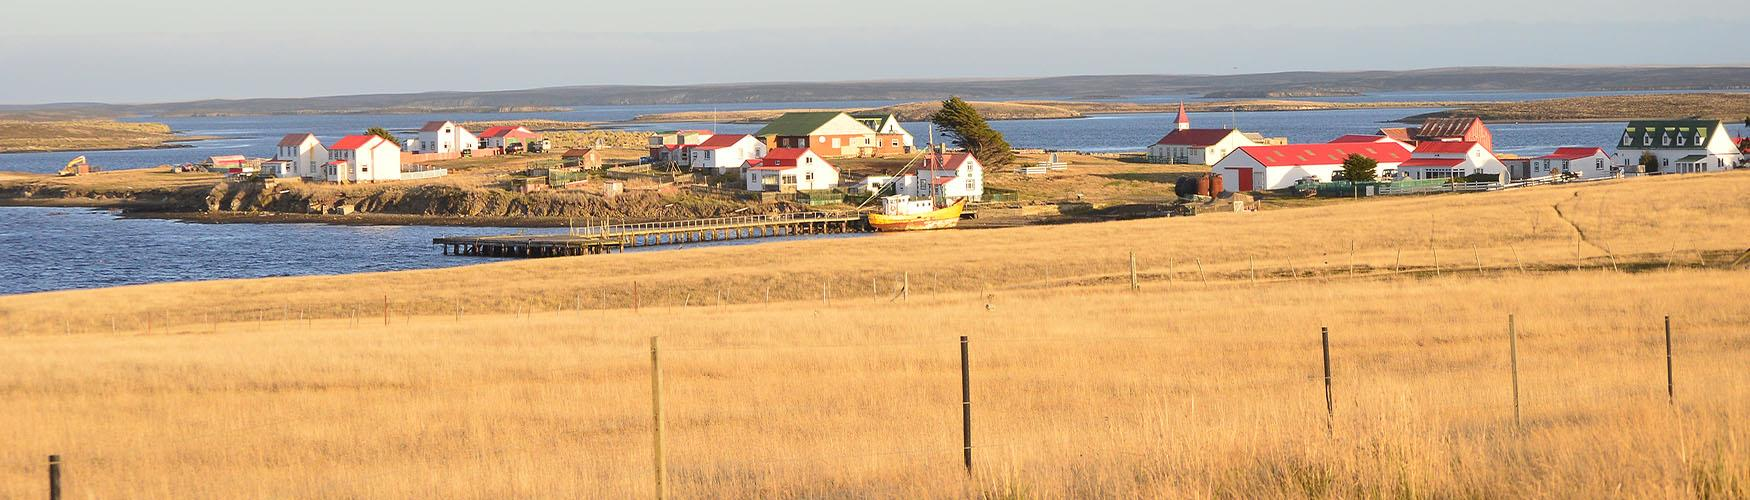 Goose Green located on the East Falkland and one of the largest settlements on East Falklands, Falkland Islands